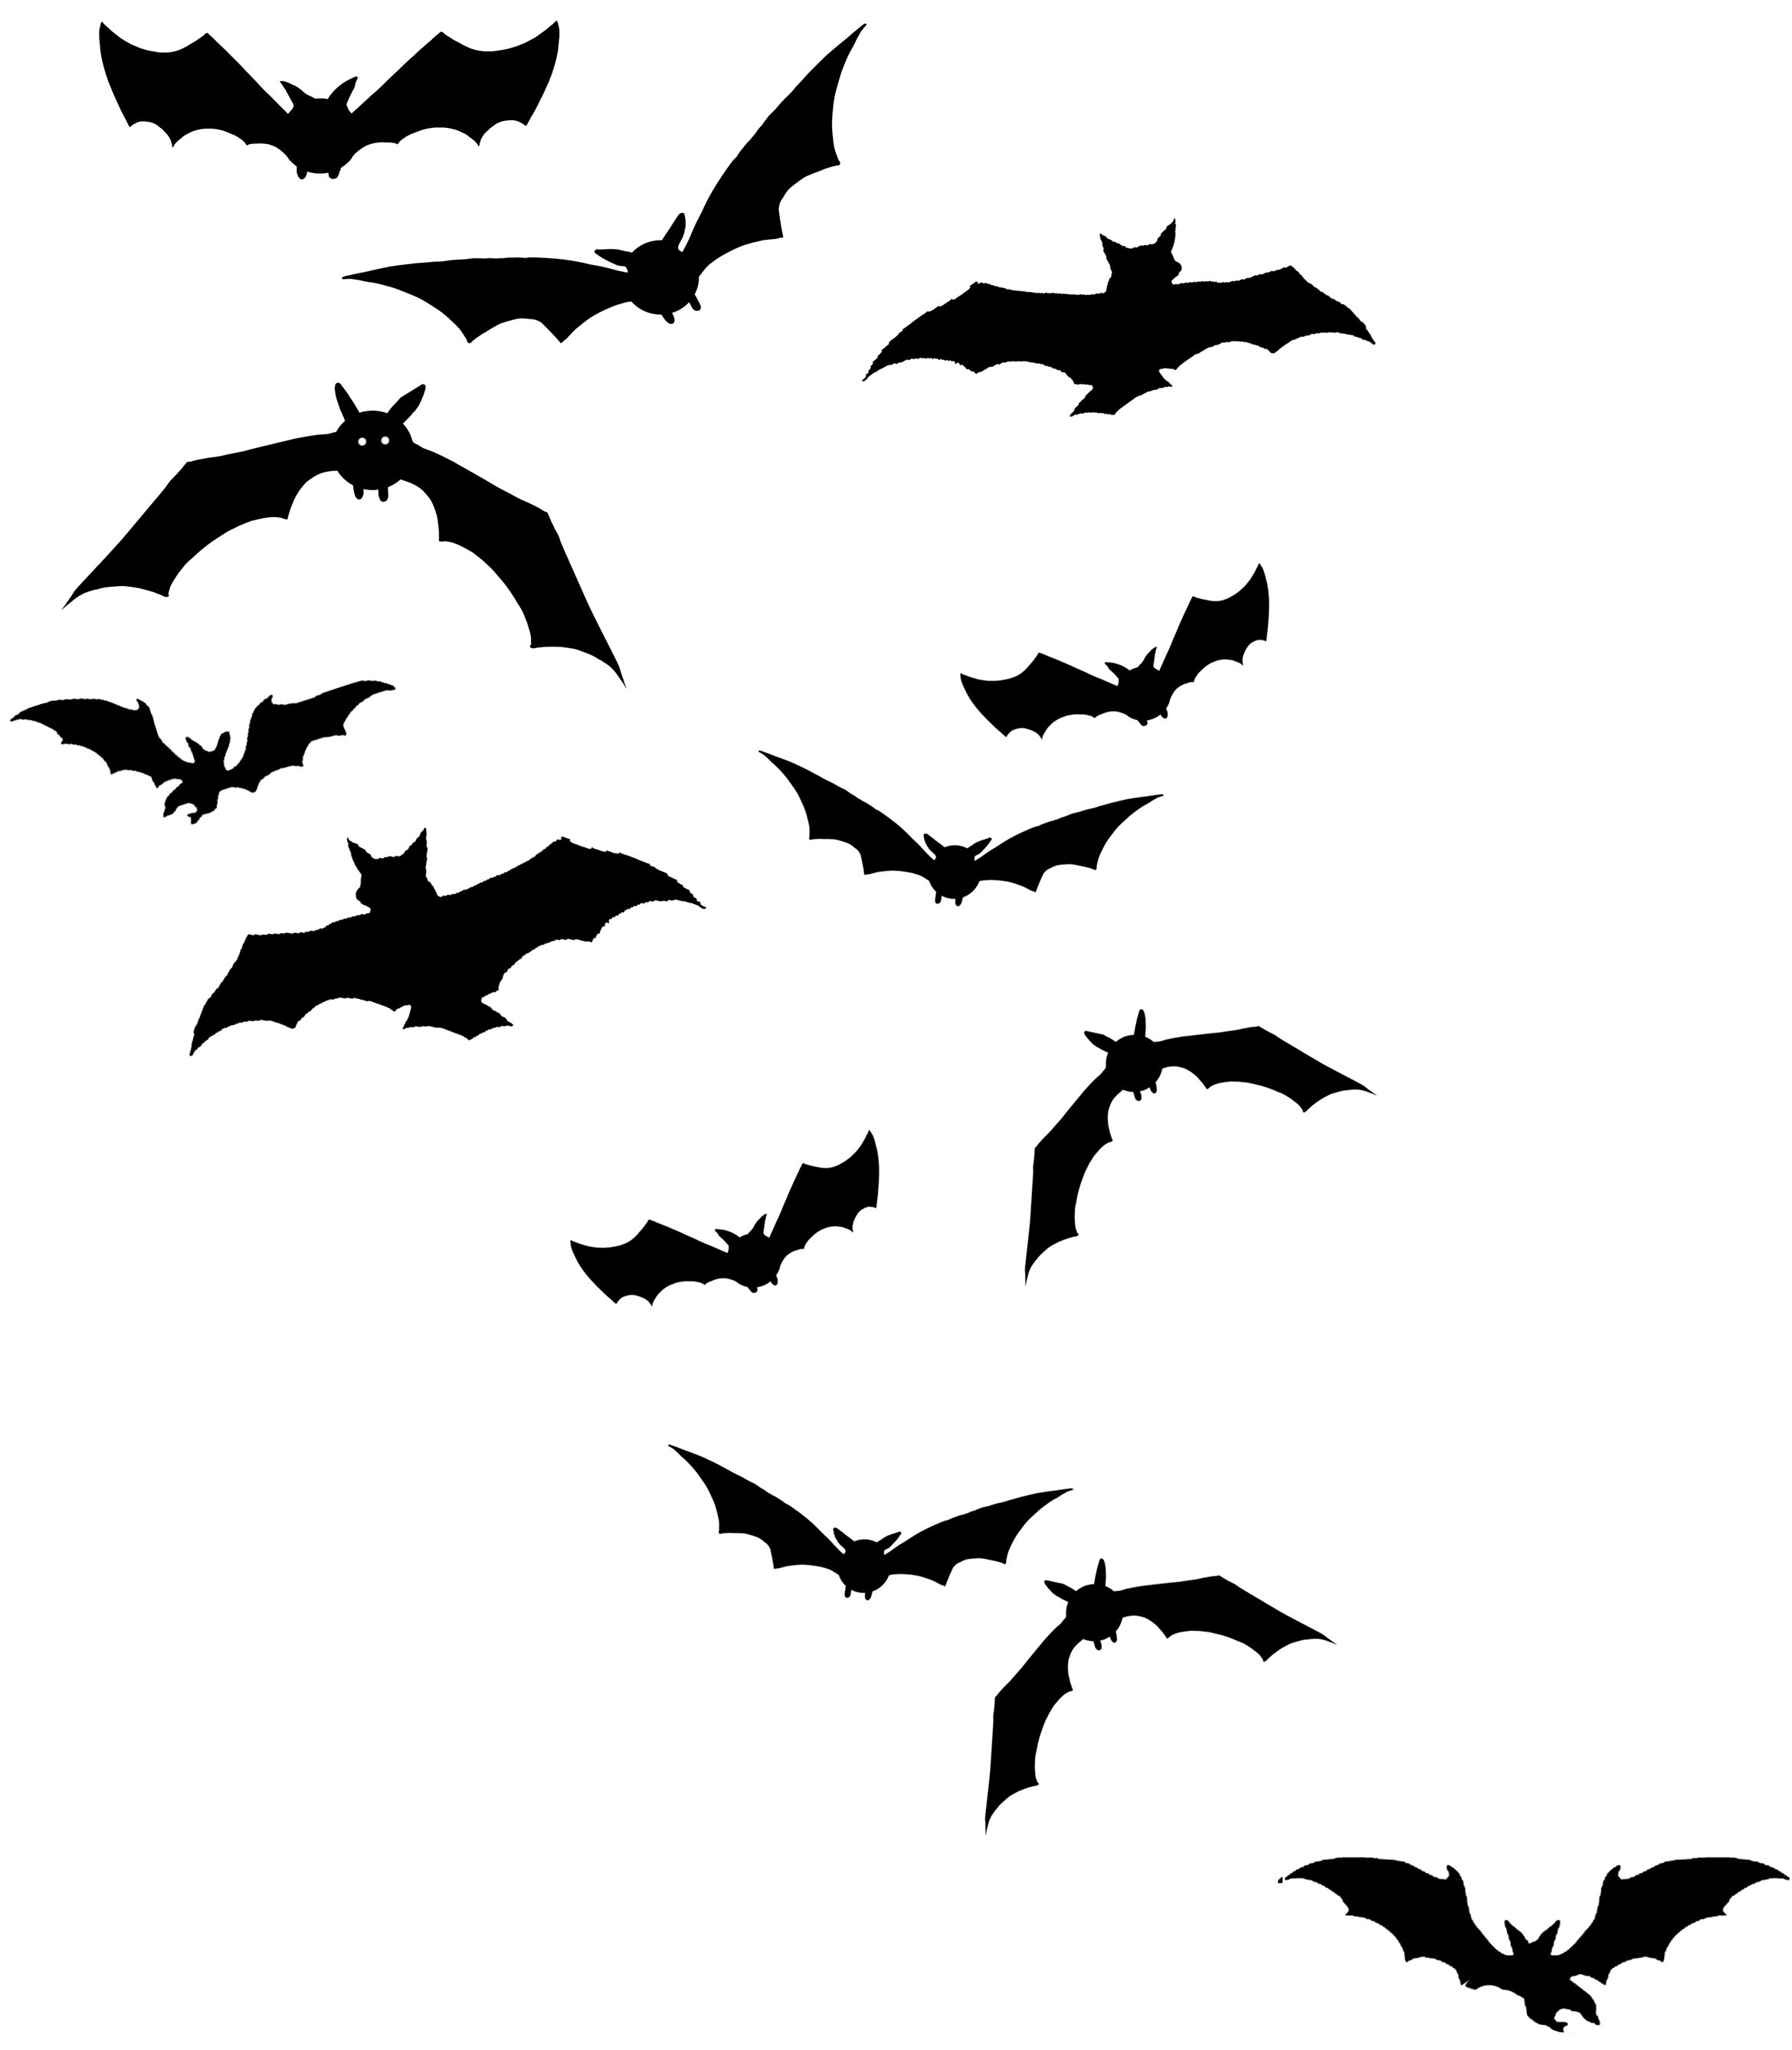 Bats flying at night clipart black and white download Images For > Animated Flying Bats | Tattoos | Batman tattoo, Tattoo ... download